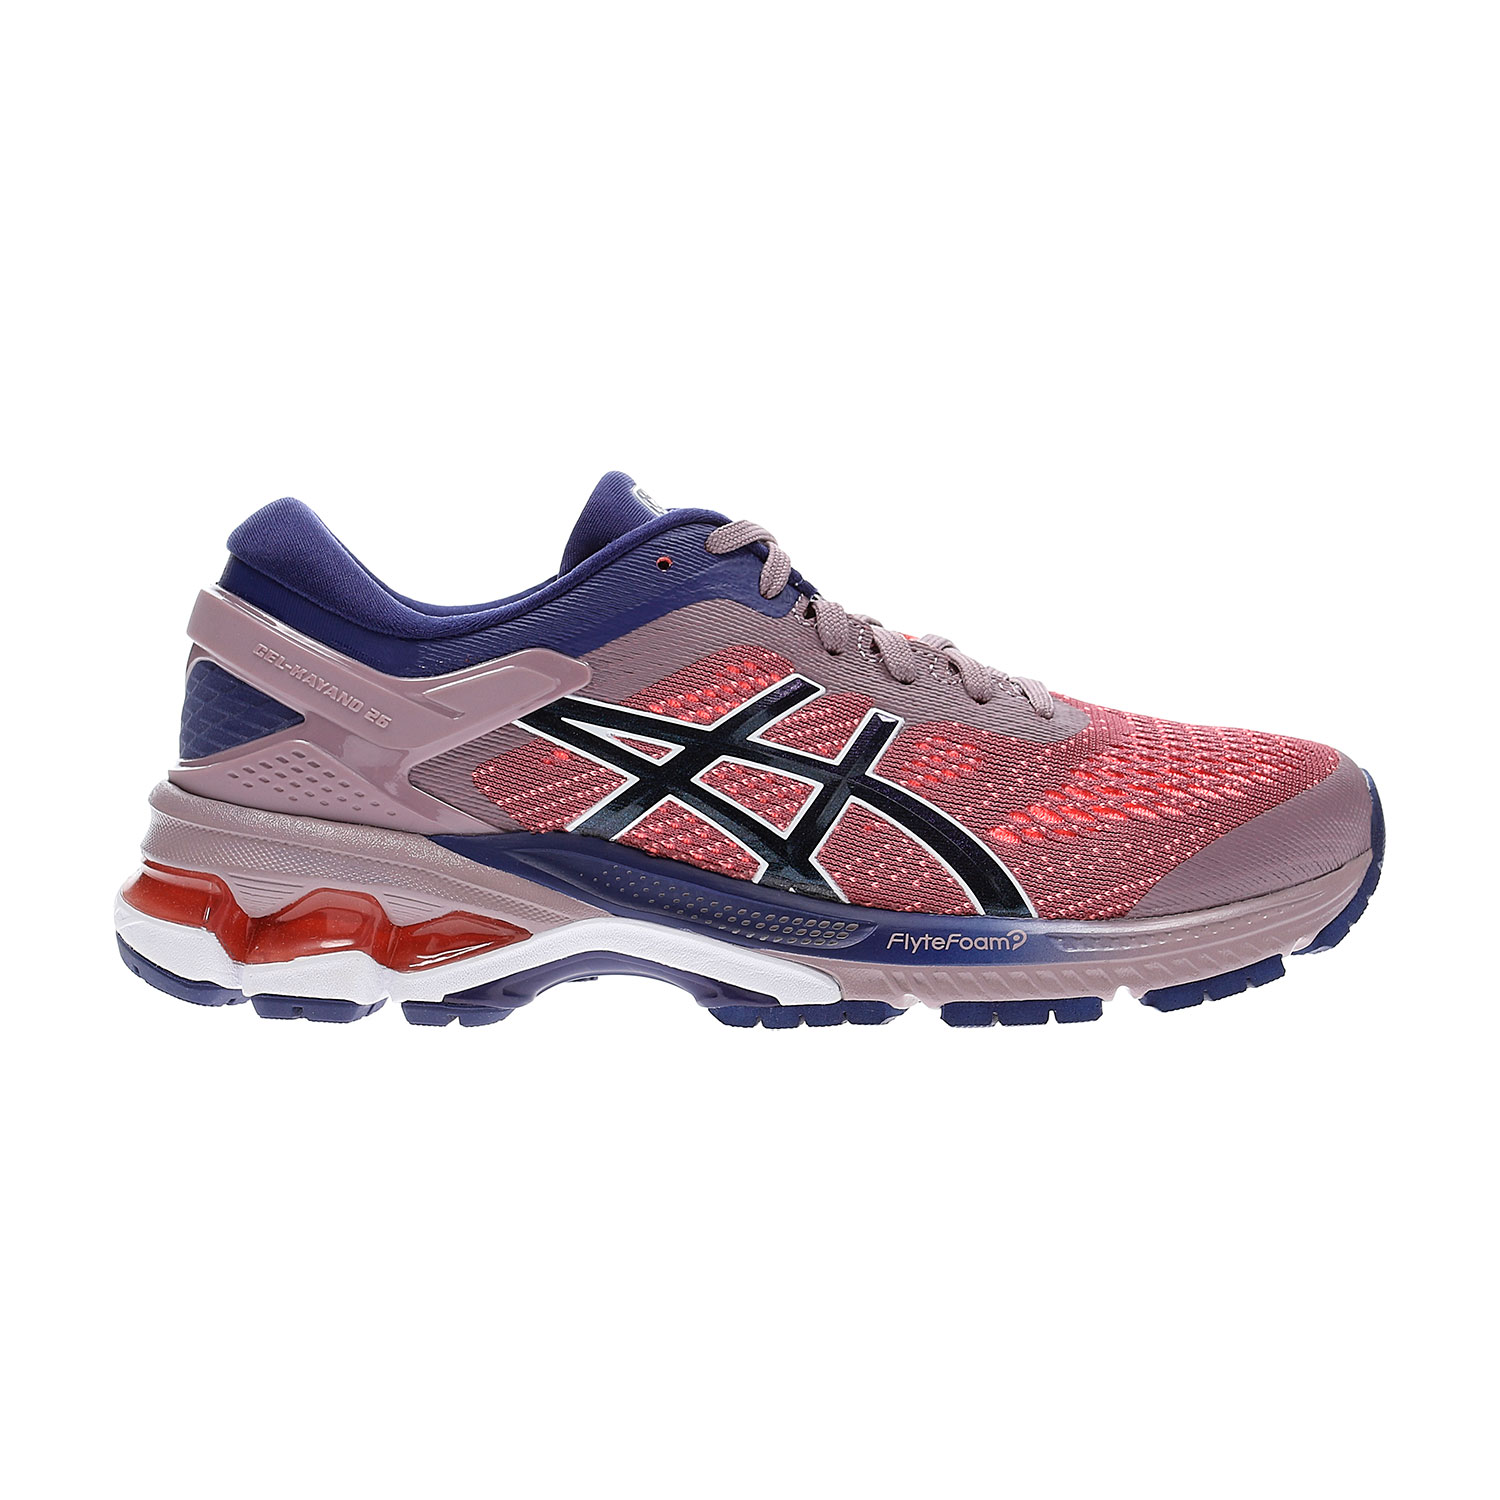 quality design 43dec 952b4 Women's Asics Gel Kayano 26